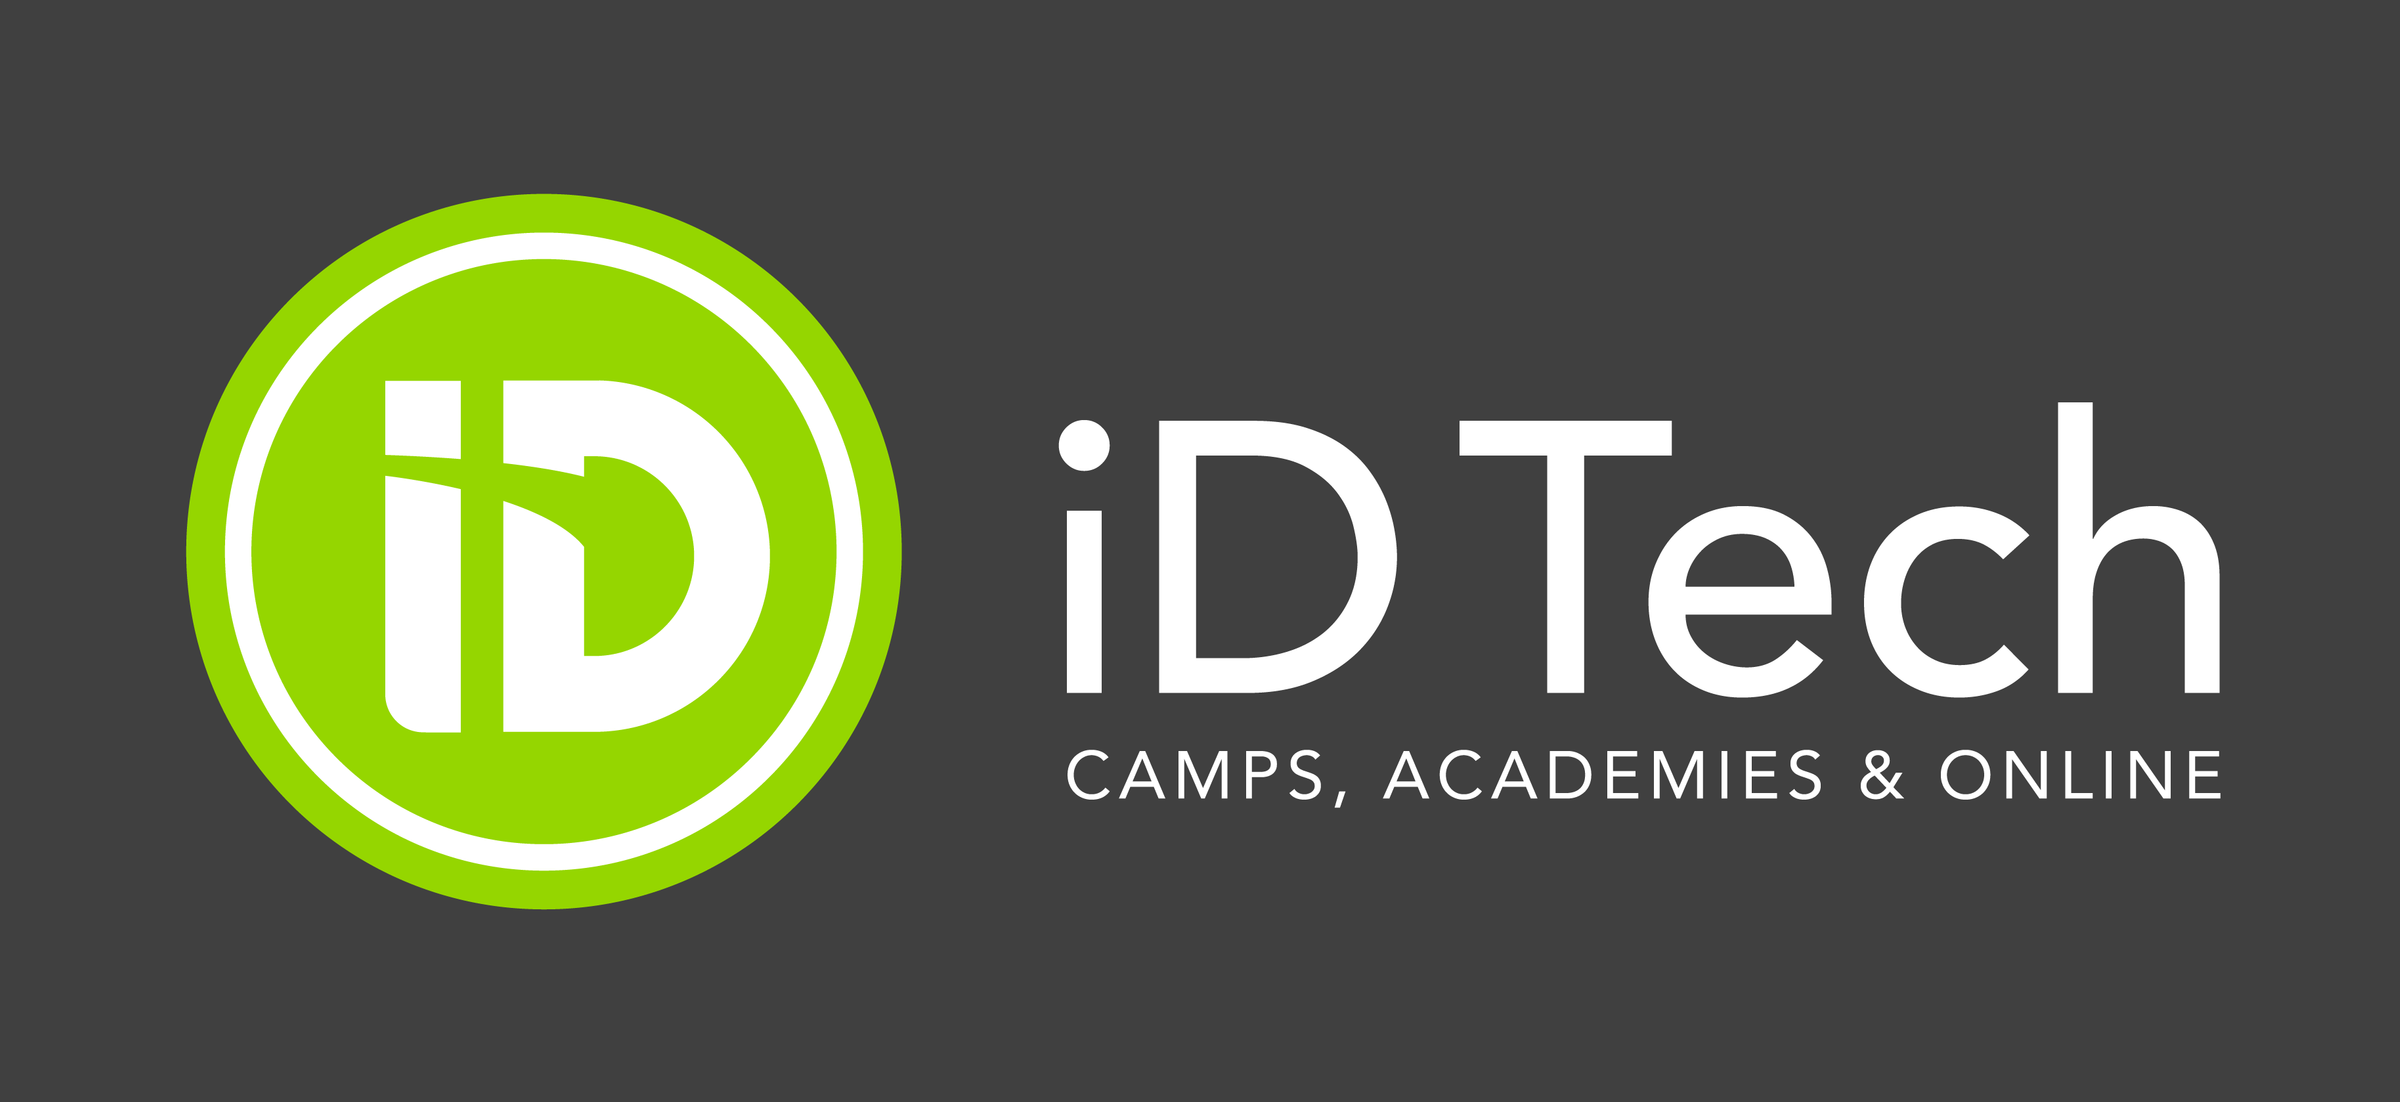 iD Tech Camps: #1 in STEM Education - Held at Adelphi University